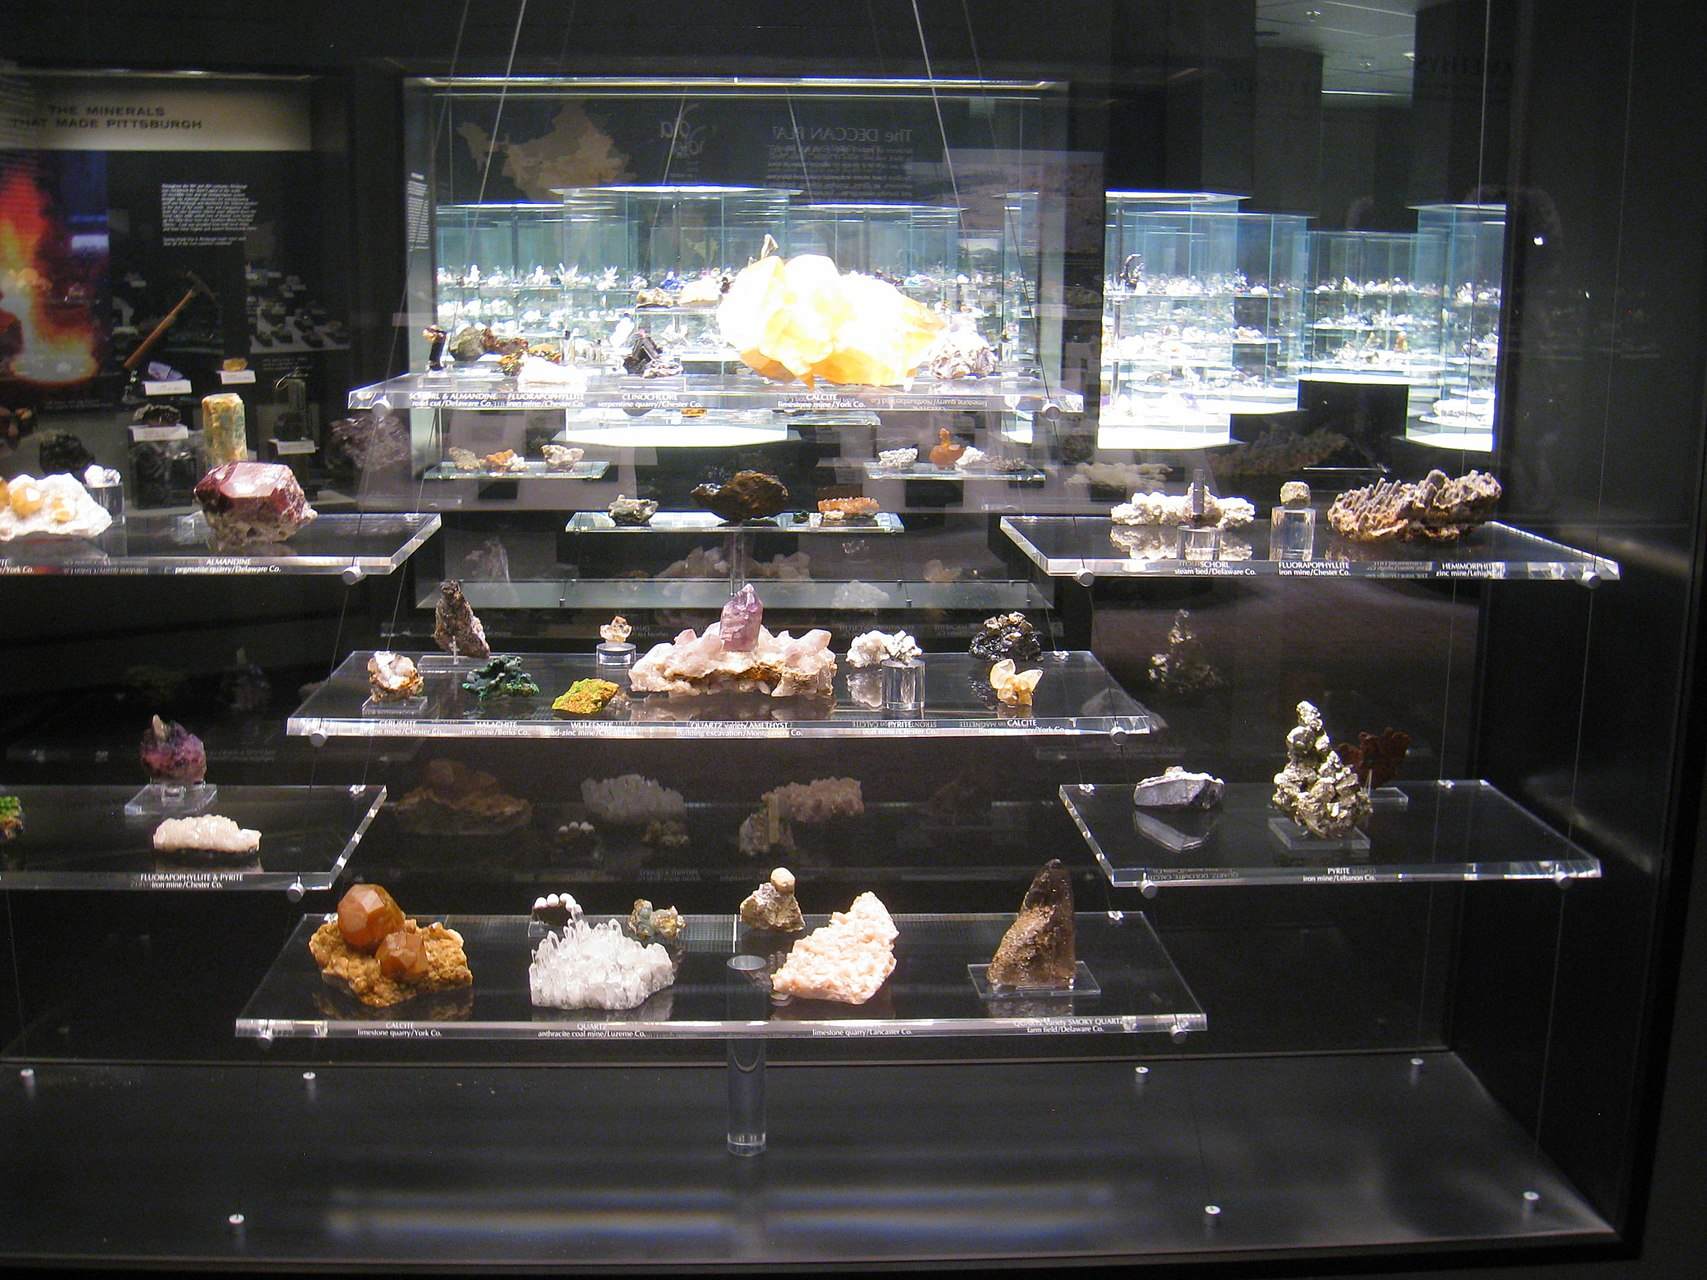 1707px-Hillman_Hall_of_Minerals_and_Gems_-_IMG_0642.jpg